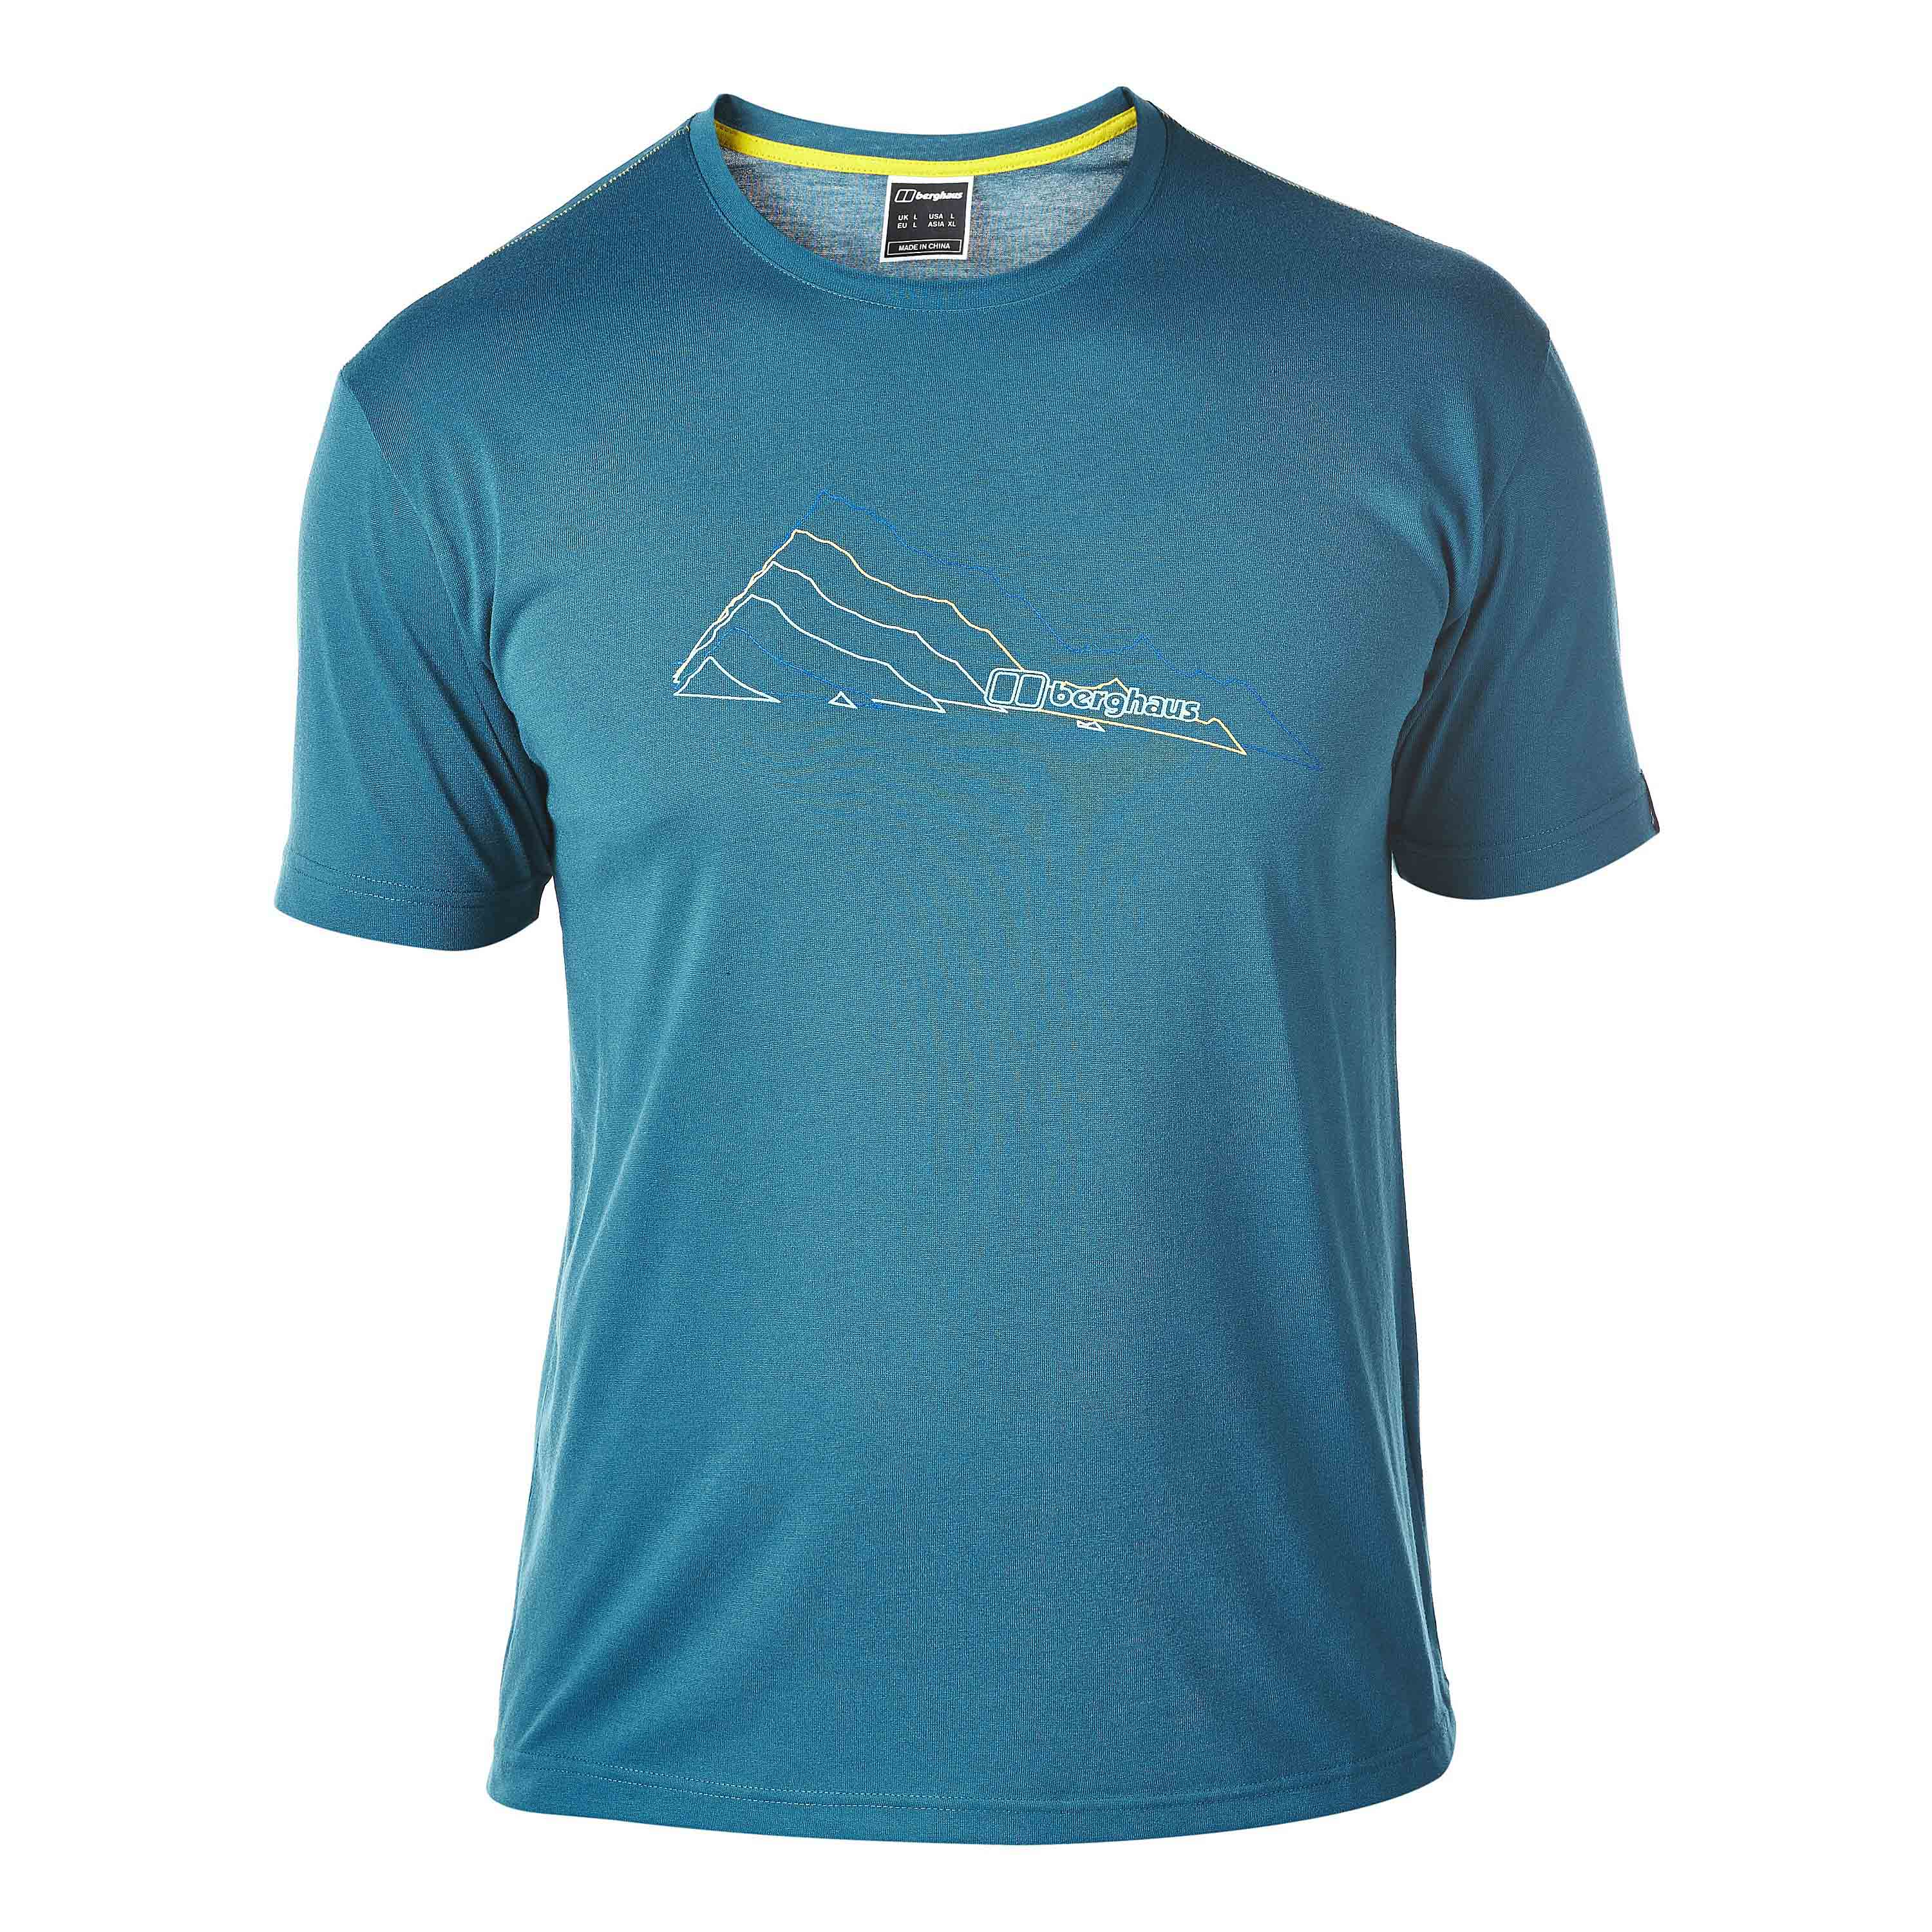 Berghaus T-Shirt Layered Mountain blue coral